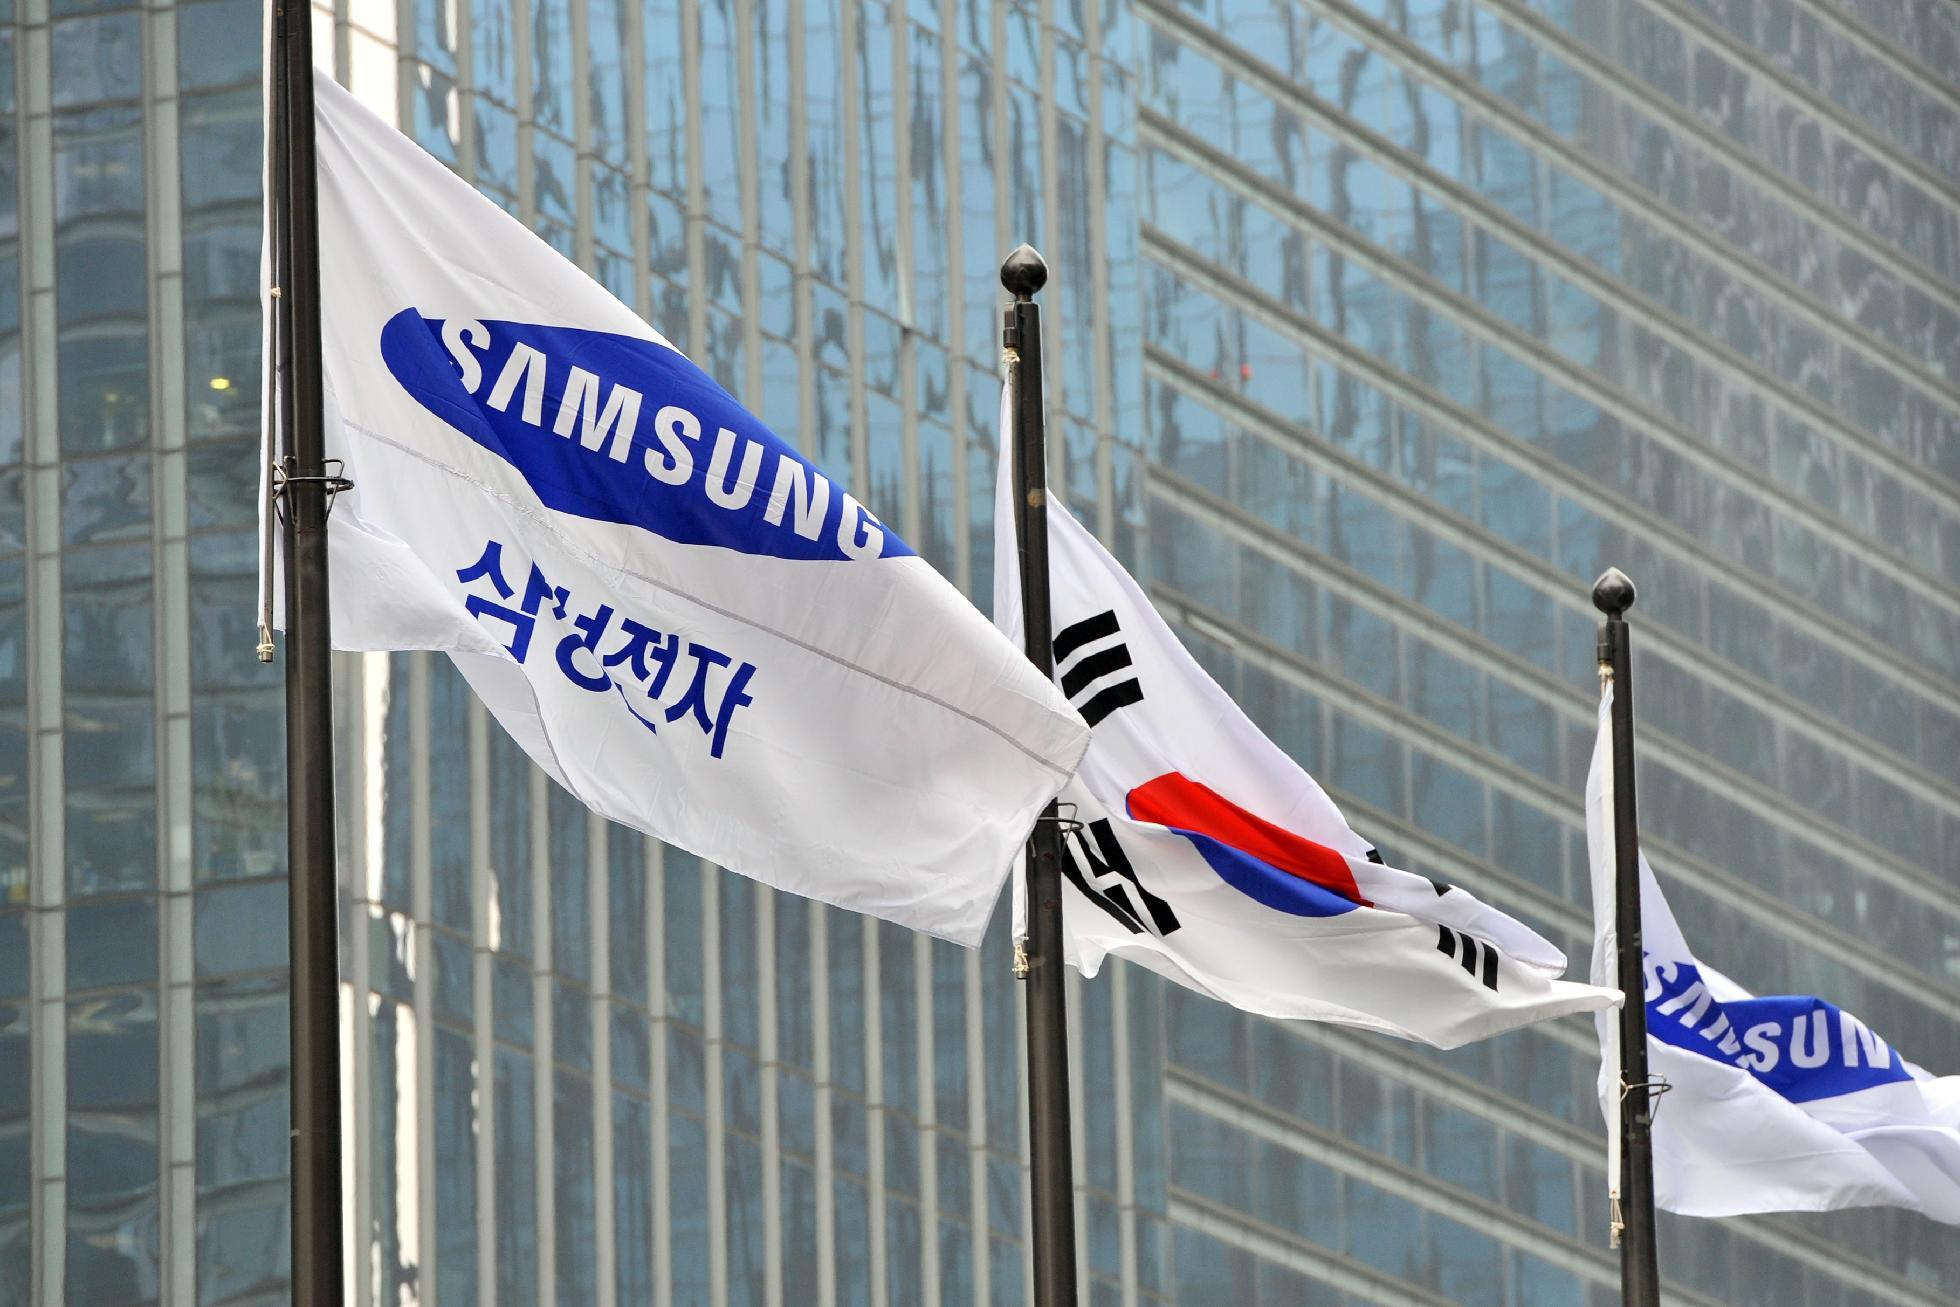 Samsung Electronics flags fly outside their headquarters in Seoul on November 6, 2013 (AFP Photo/Jung Yeon-Je)